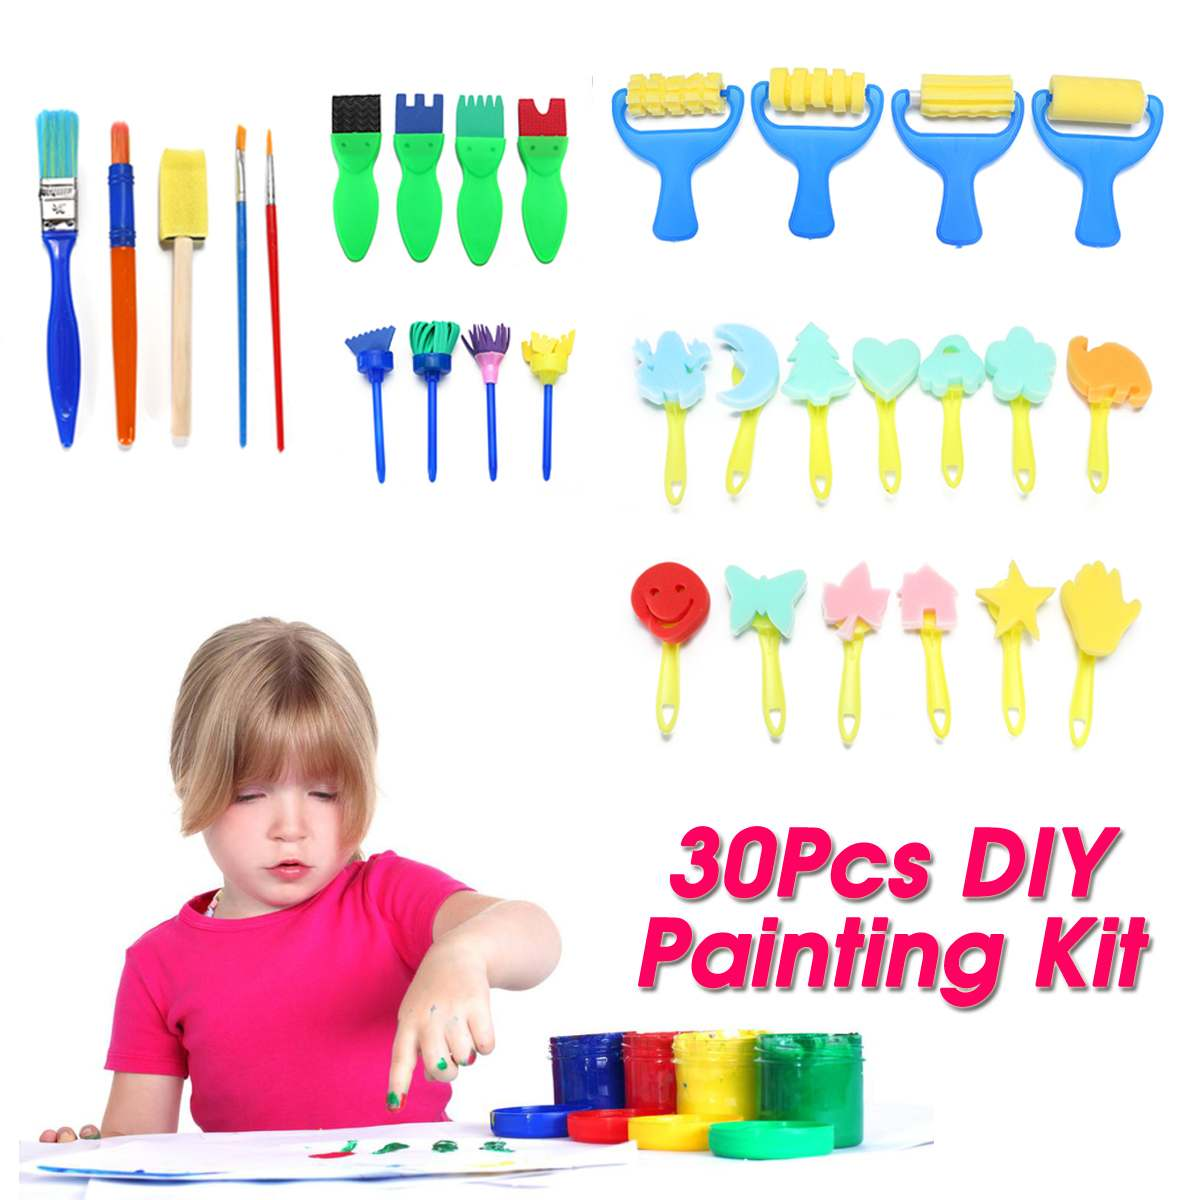 30pcs/set Diy Child Painting Tool Kit Roller Mold Sponge Drawing Writing Brush Mini Pattern Mold Toy Kids Gifts  Merry Christmas